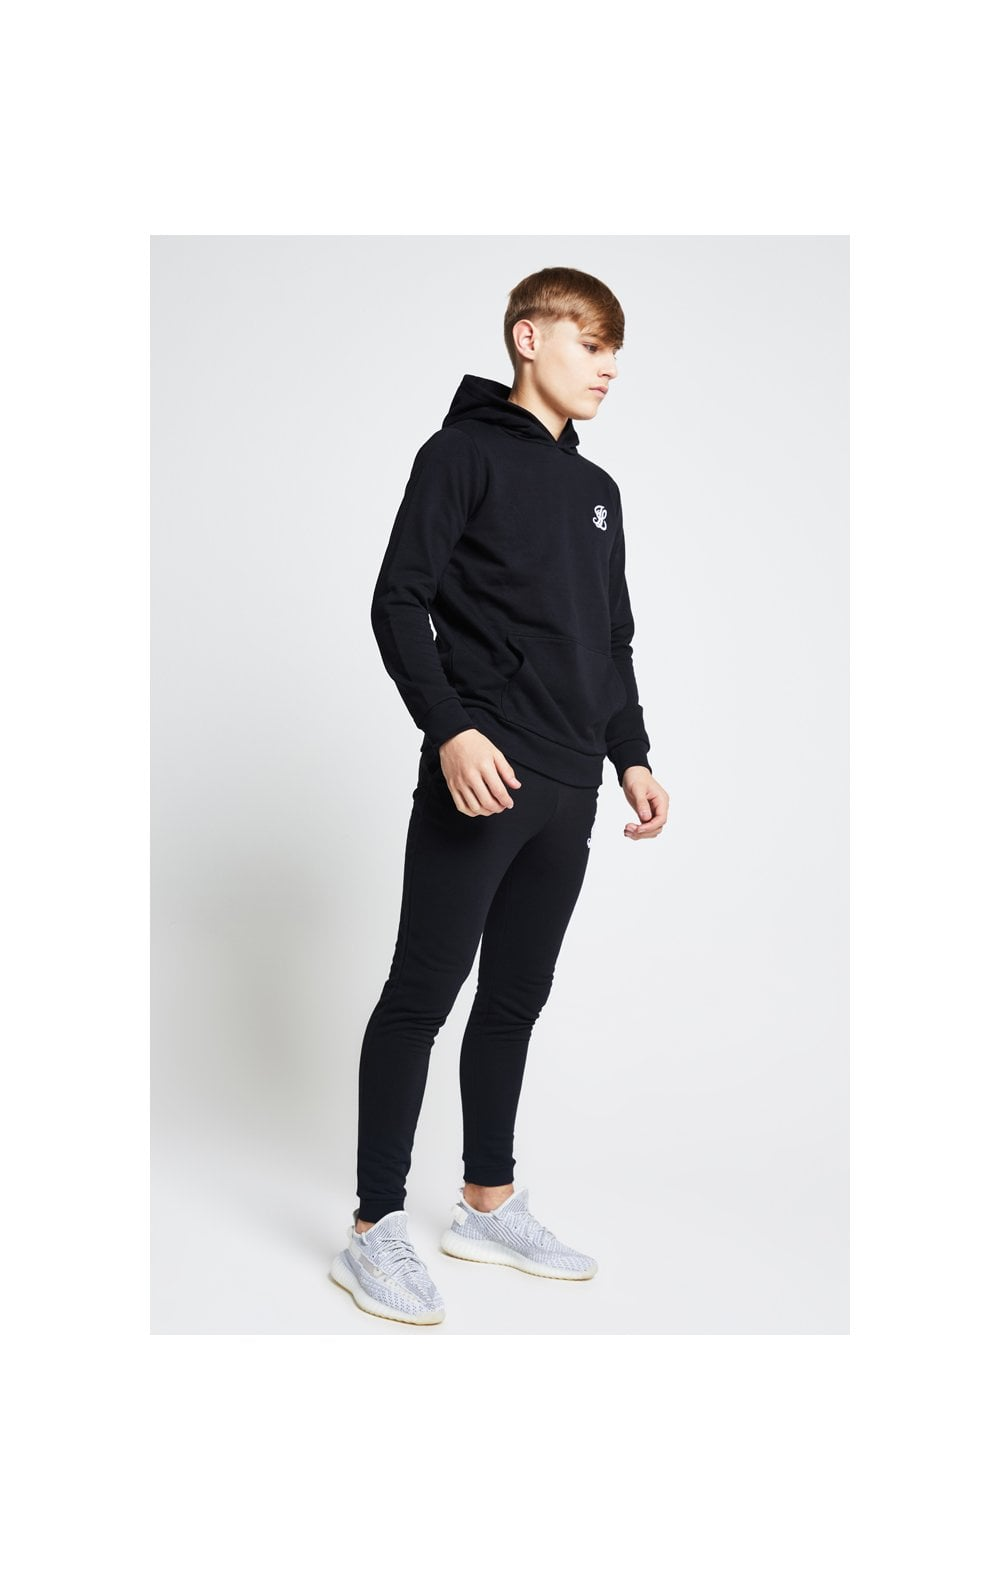 Illusive London Joggers – Black (4)